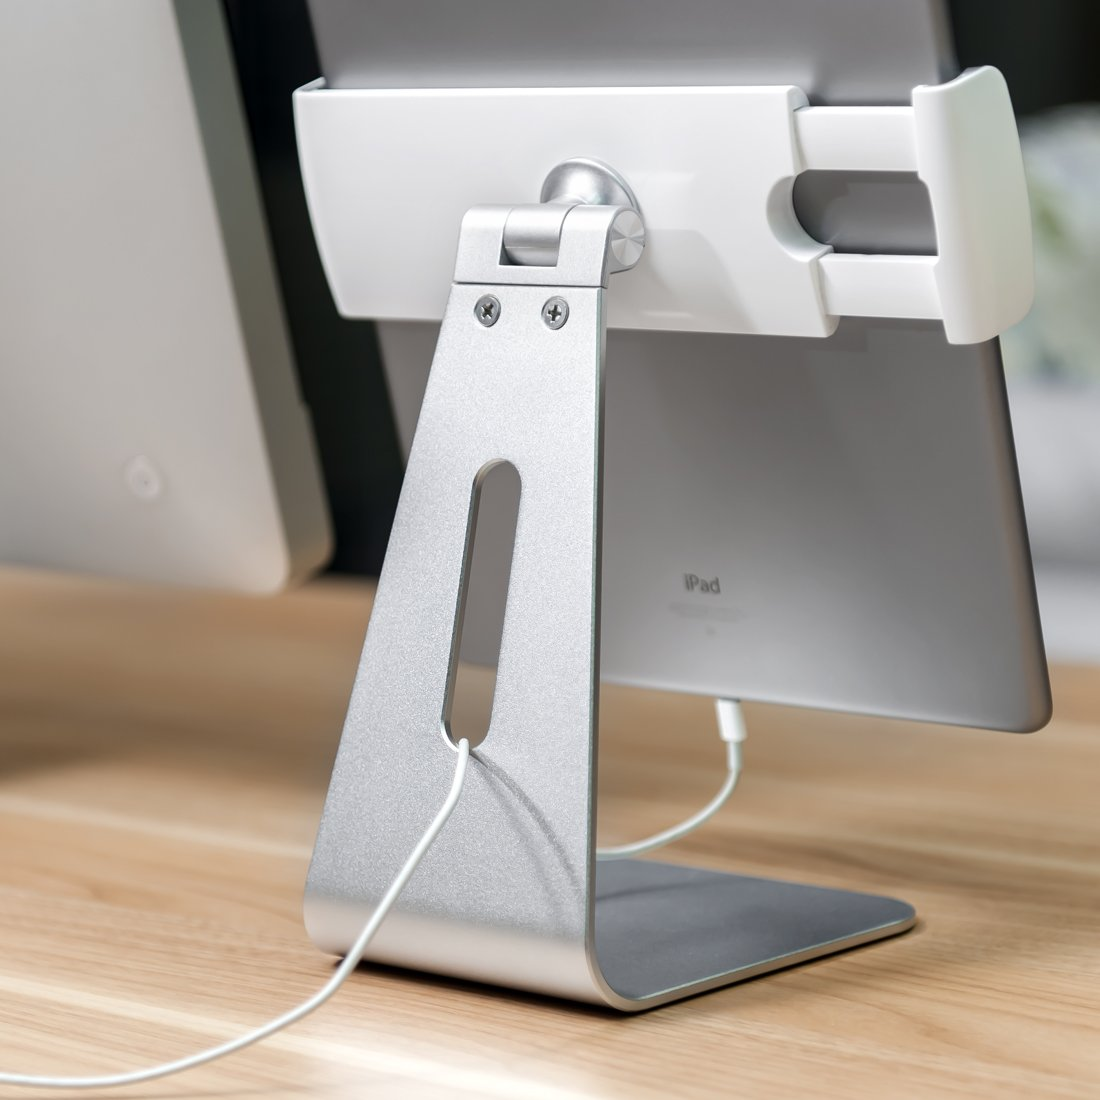 Viozon ipad Pro Stand, Tablet Stands 360° Rotatable Aluminum Alloy Desktop Mount Stand for Ipad Pro Ipad Air Ipad Mini Surface and Surface Pro by Viozon (Image #7)